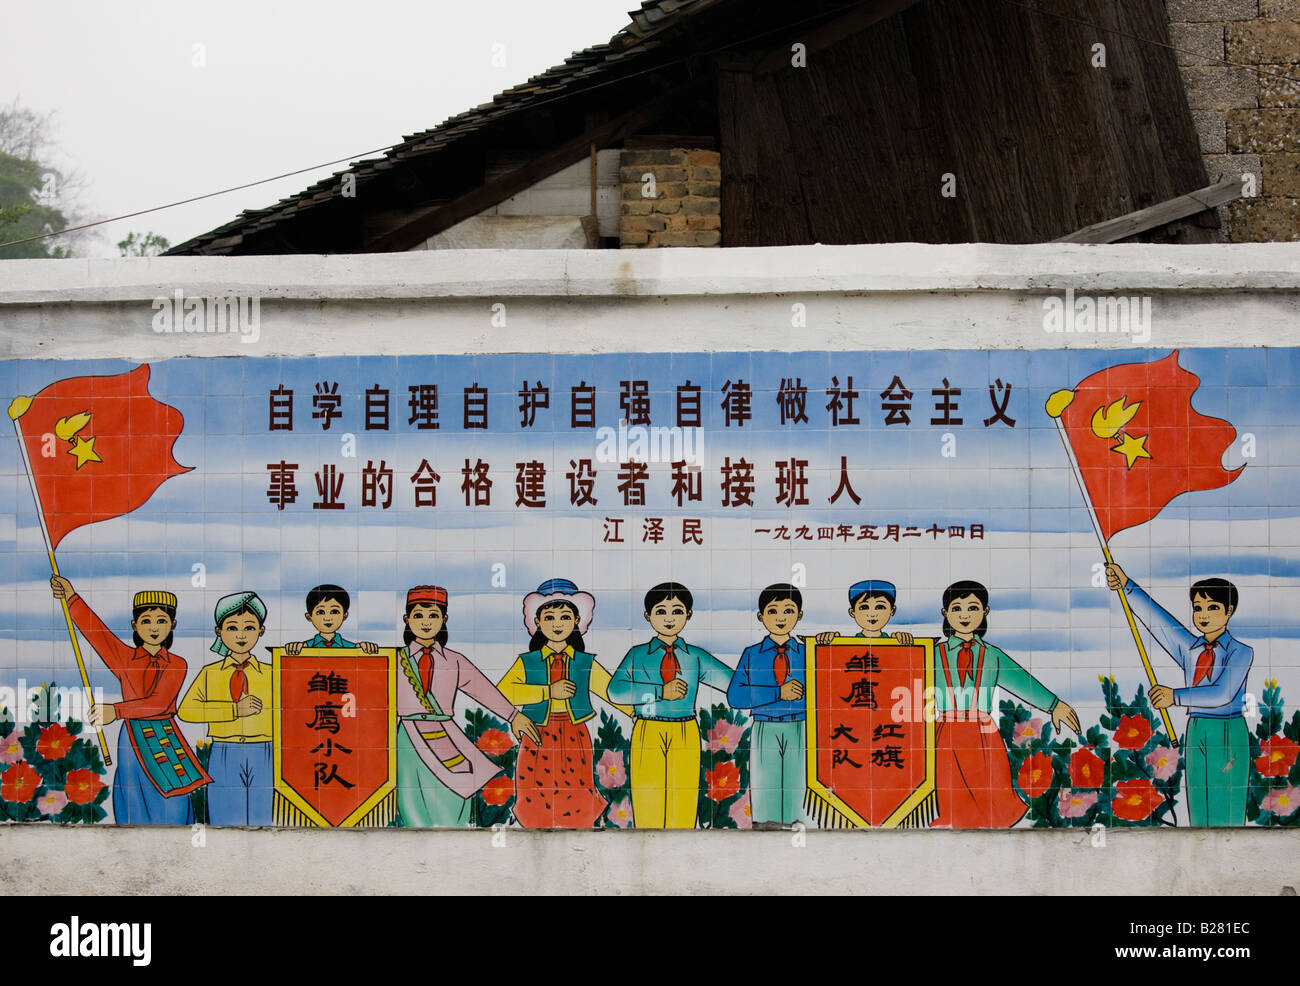 Painting On The Wall Of A Primary School Playground In Fuli China